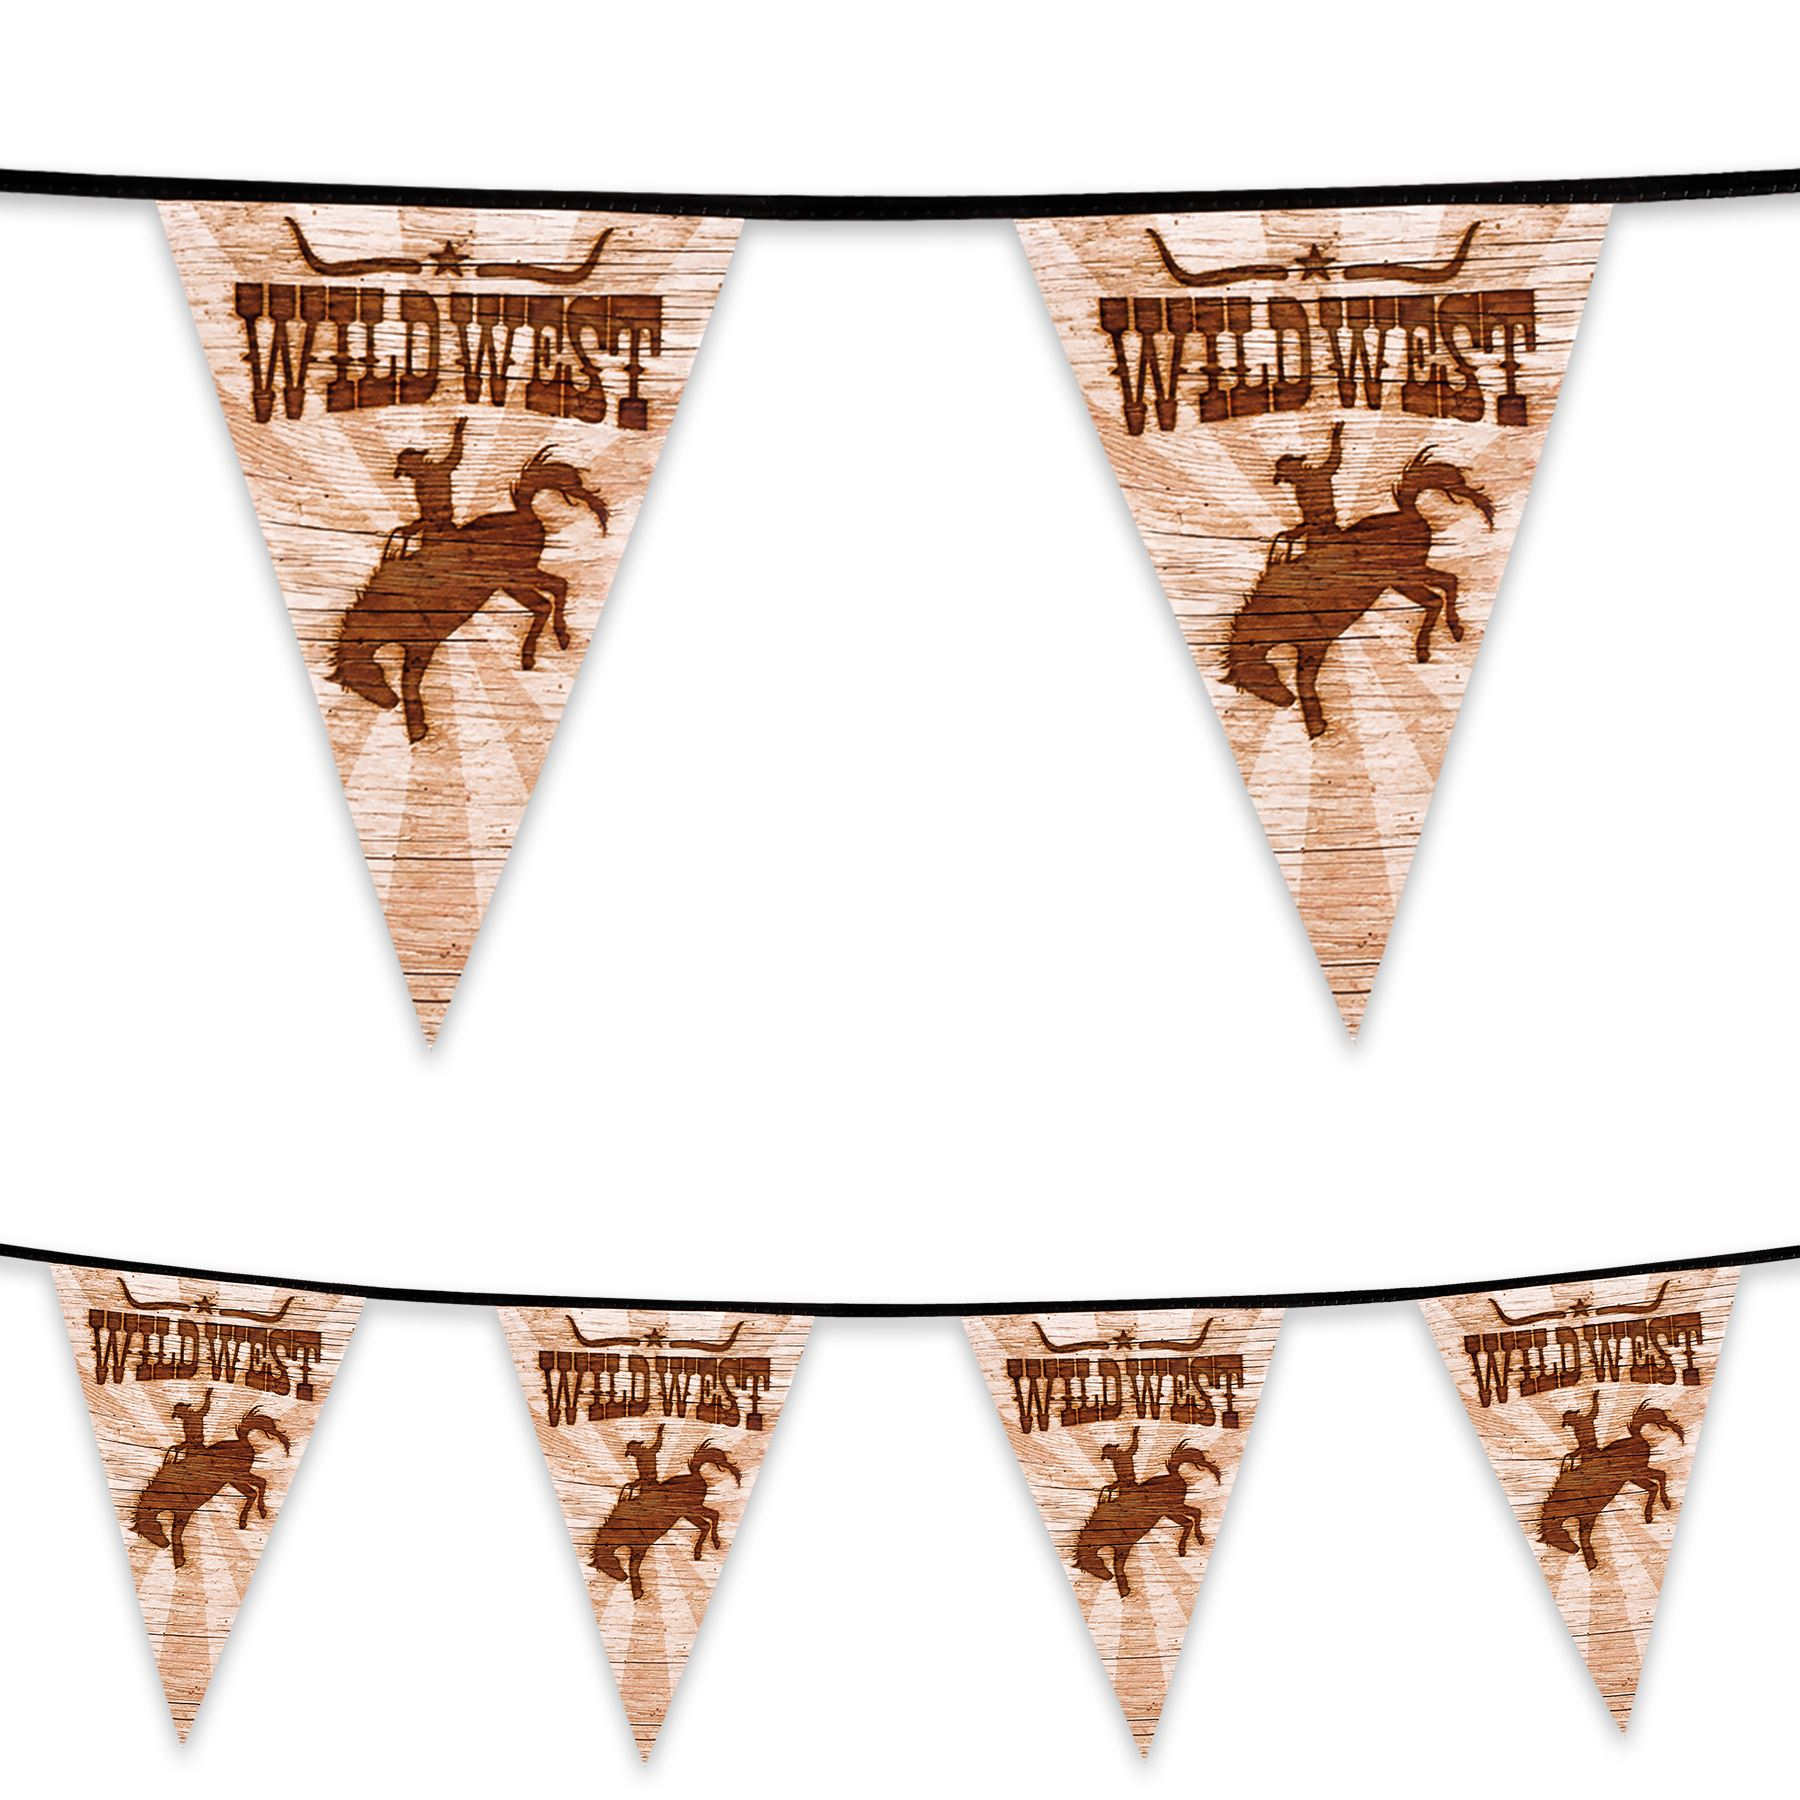 6m Plastic Bunting Wild West Sheriff Cowboy Rodeo Banner Garland Party Decor